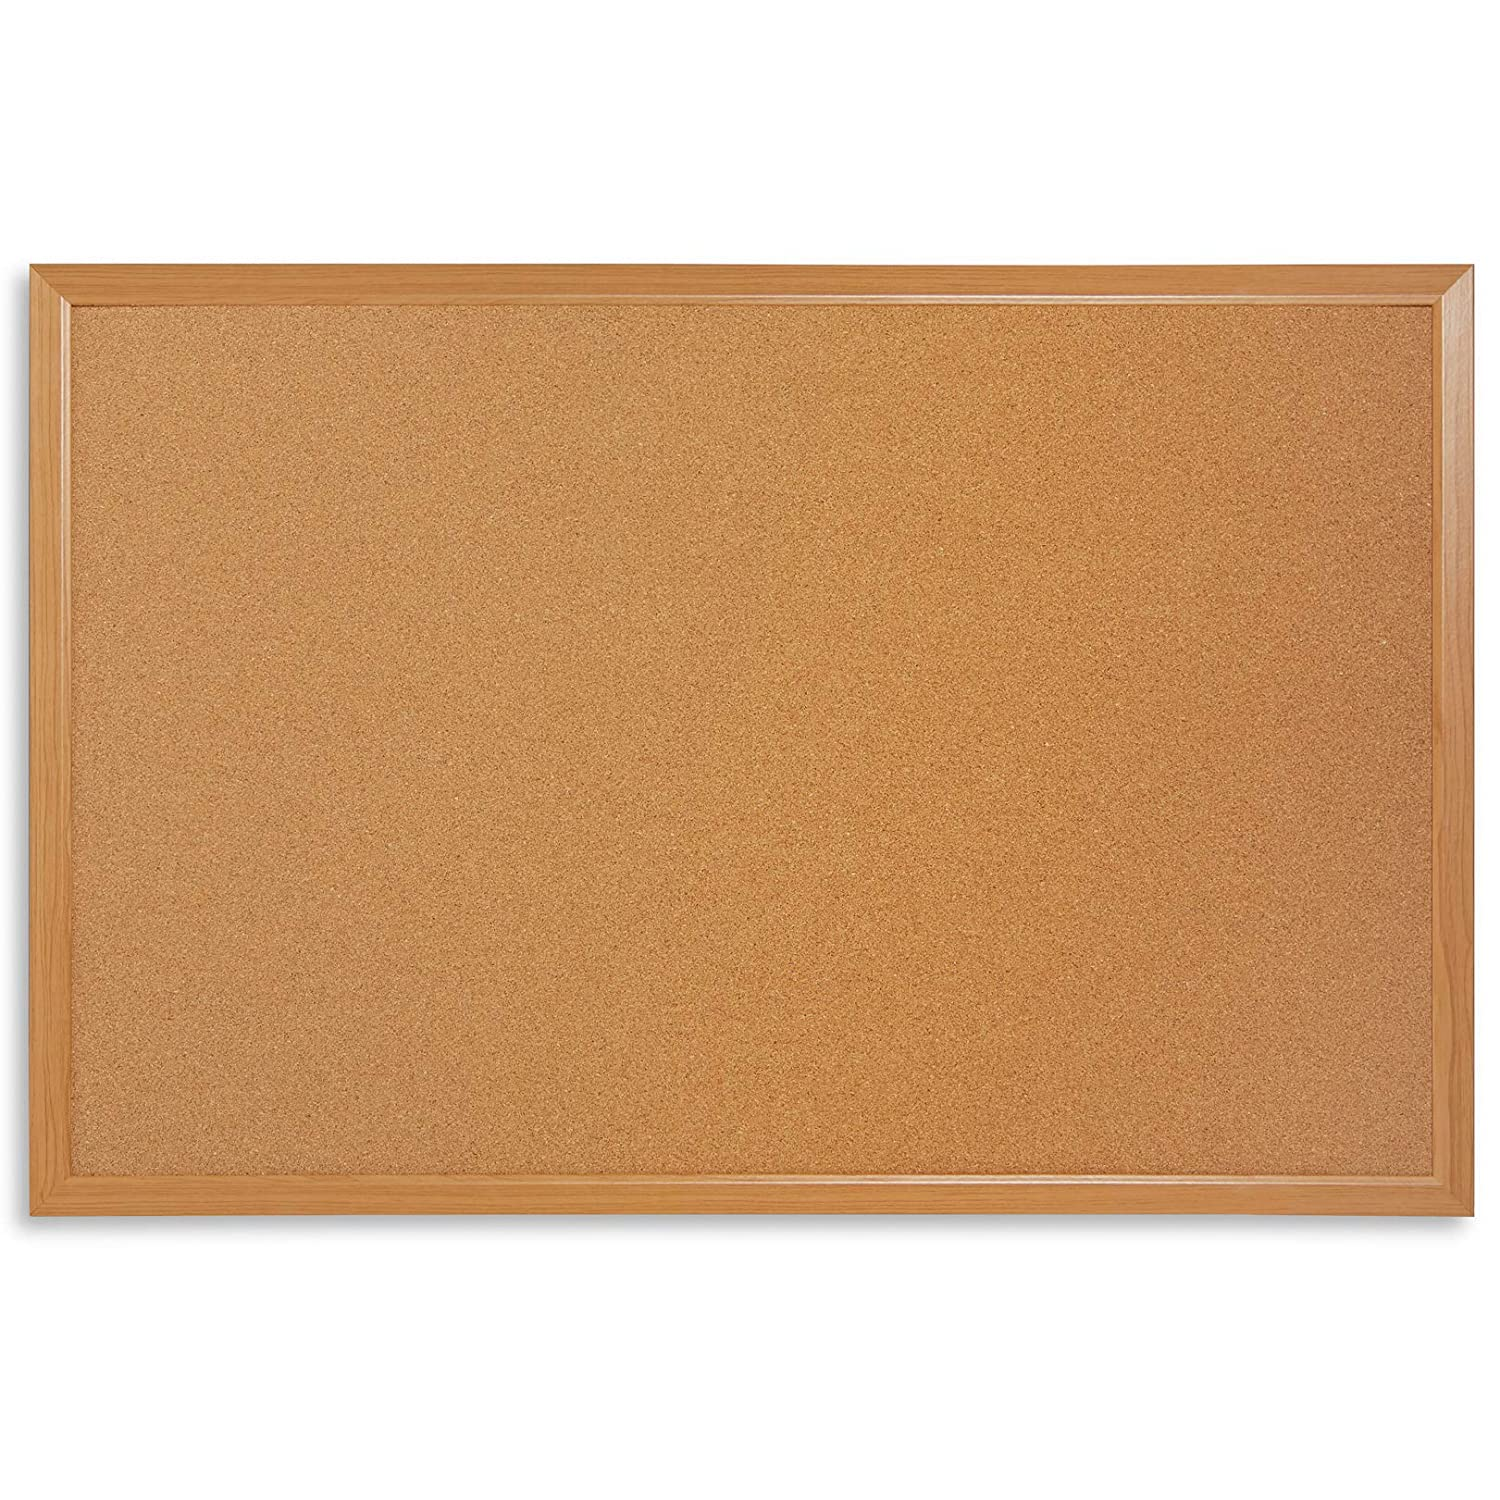 "Blue Summit Supplies 24"" x 36"" Corkboard with Natural Wood Frame, Bulletin Board with Included Push Pins for Office, Classroom, or Home, Mounting Hardware Included"